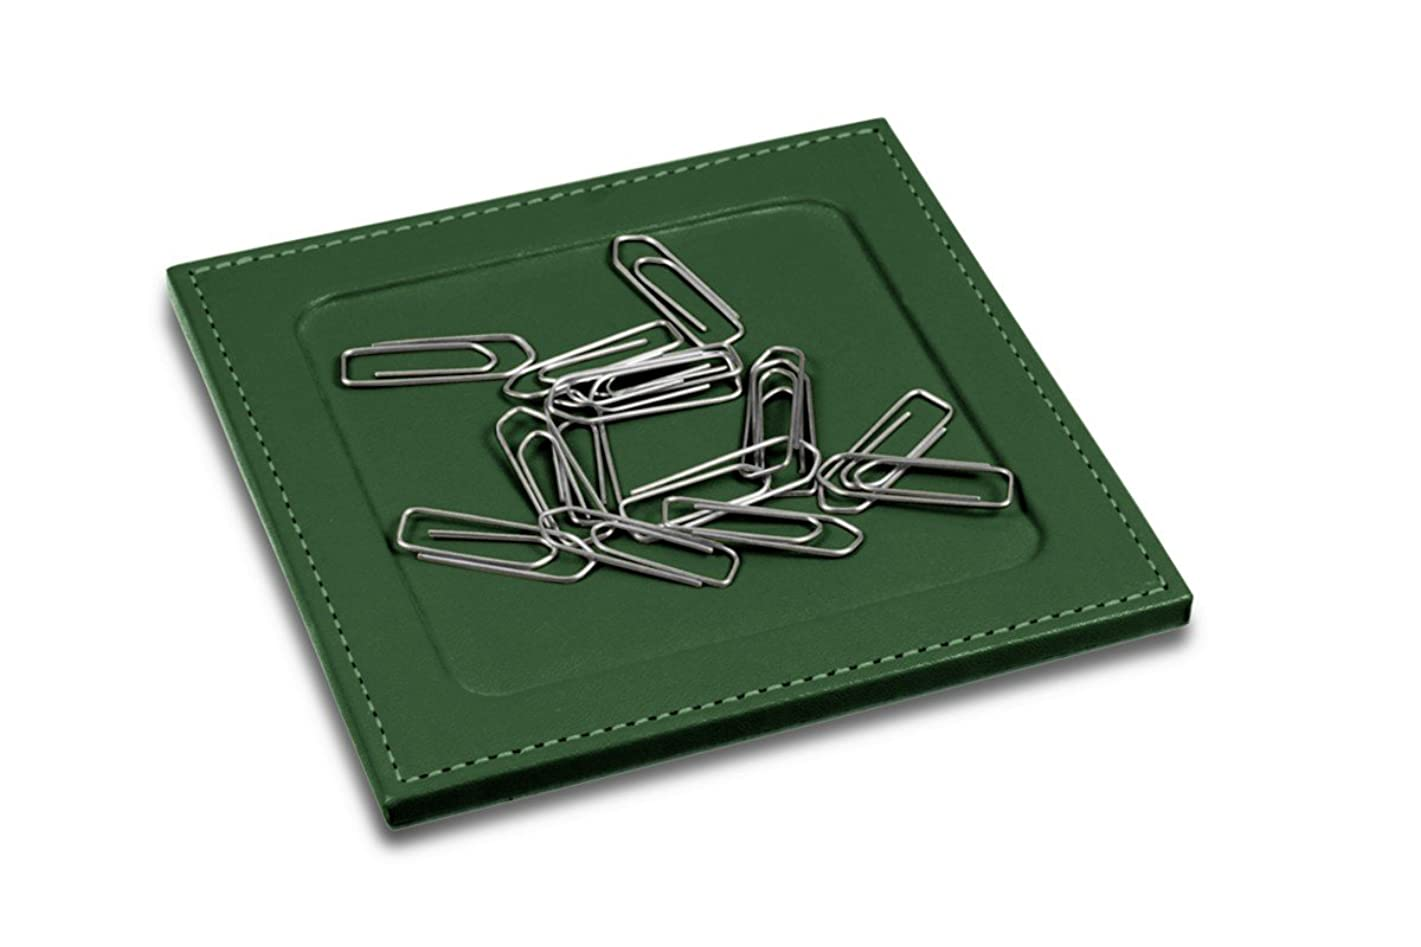 Lucrin - Stand for paper clips with square corners - Dark Green - Smooth Leather